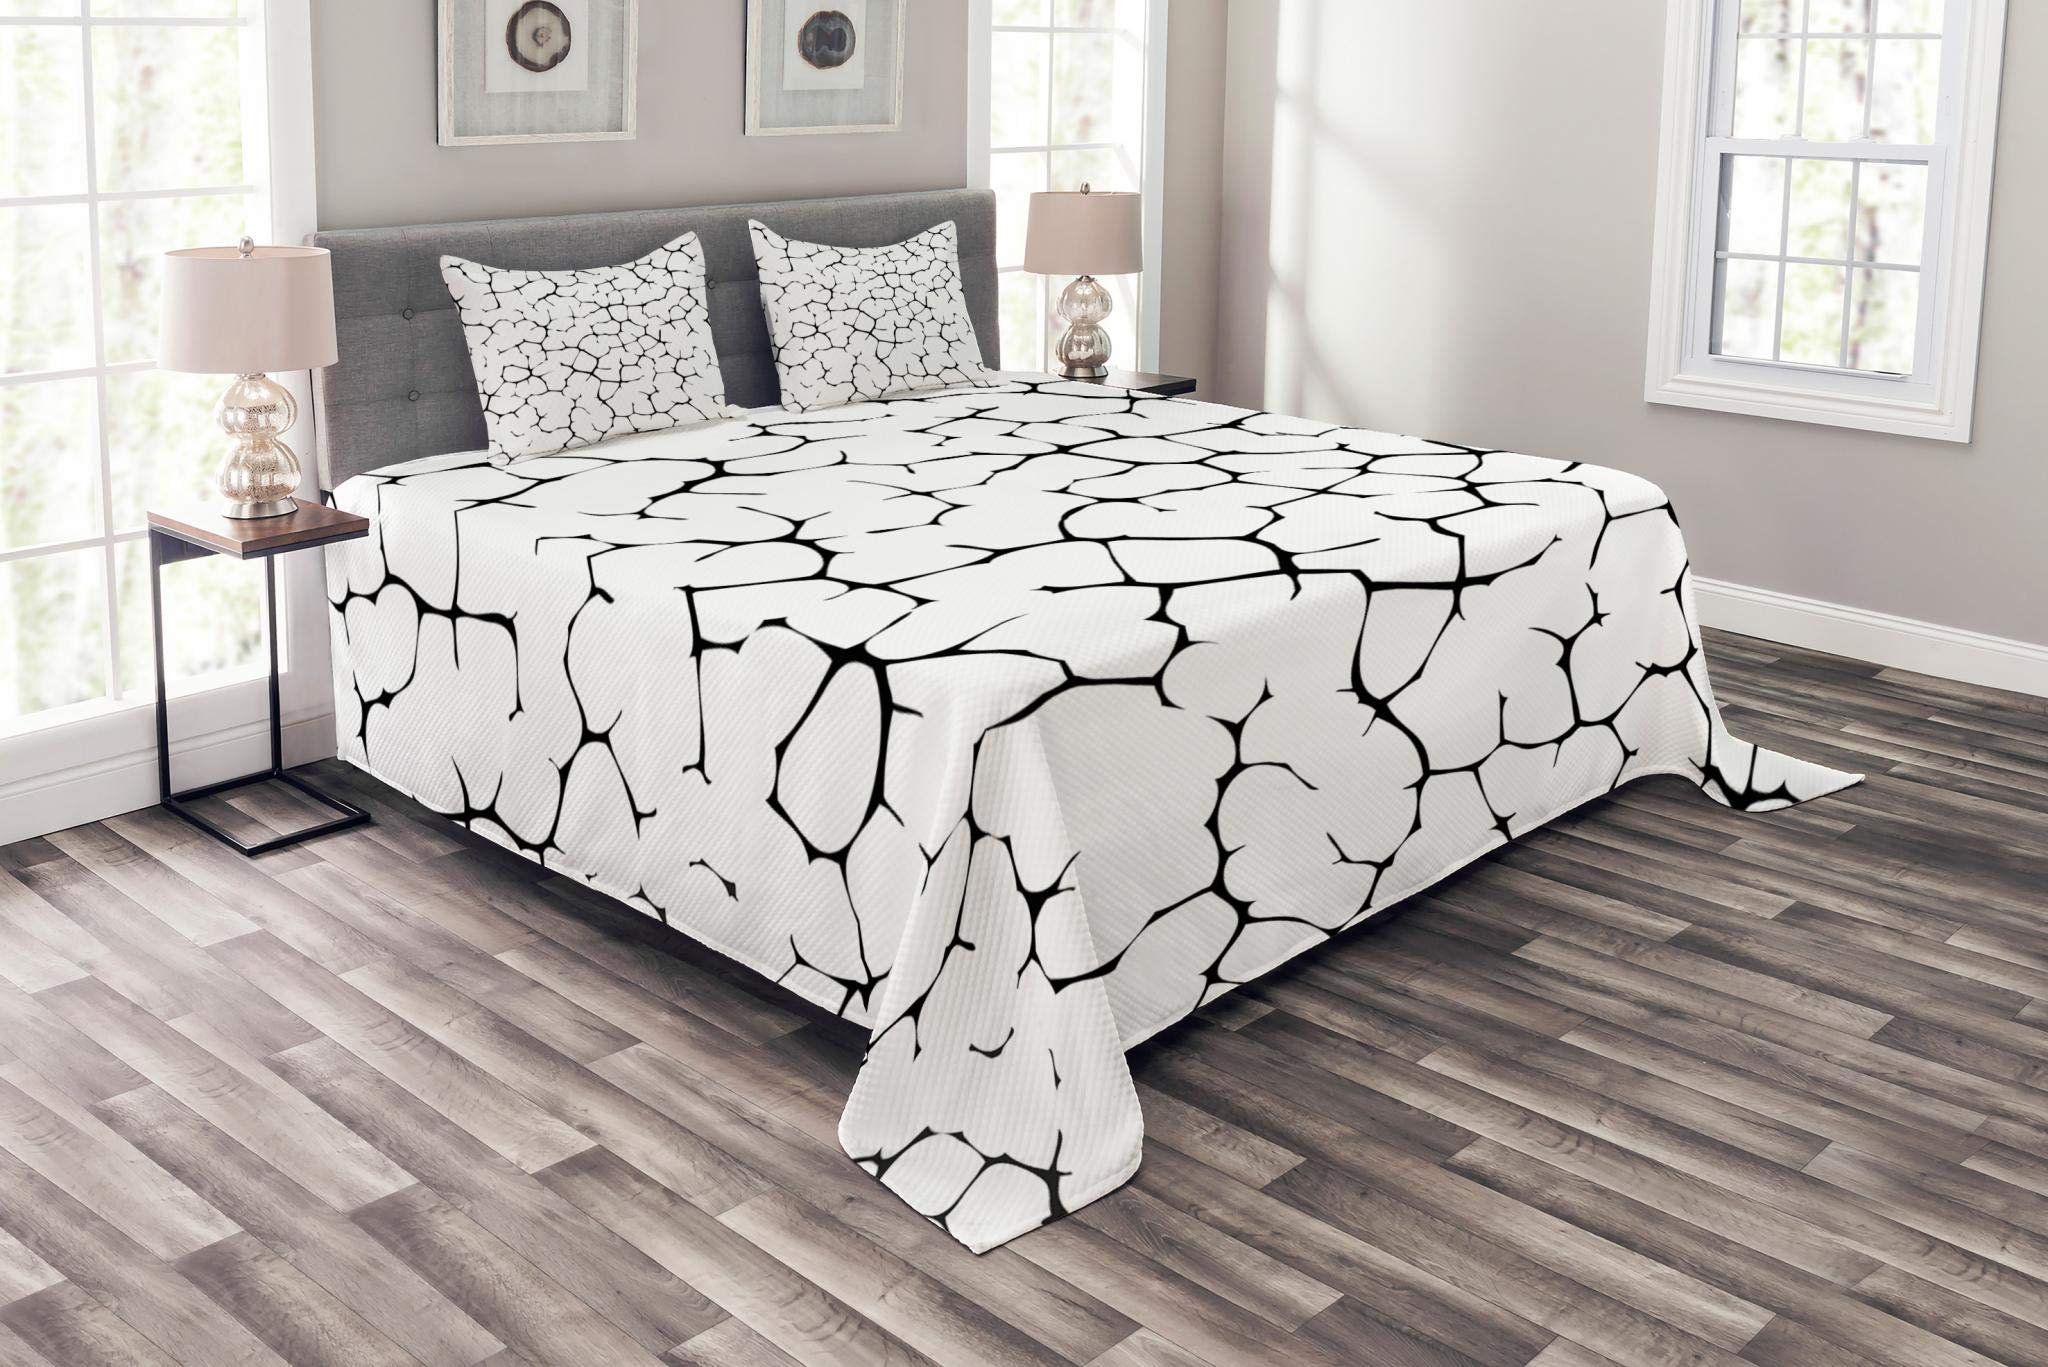 Lunarable Black and White Bedspread Set King Size, Abstract Art Illustration of Cracked Texture of Wall or Earh Print, Decorative Quilted 3 Piece Coverlet Set with 2 Pillow Shams, Black and White